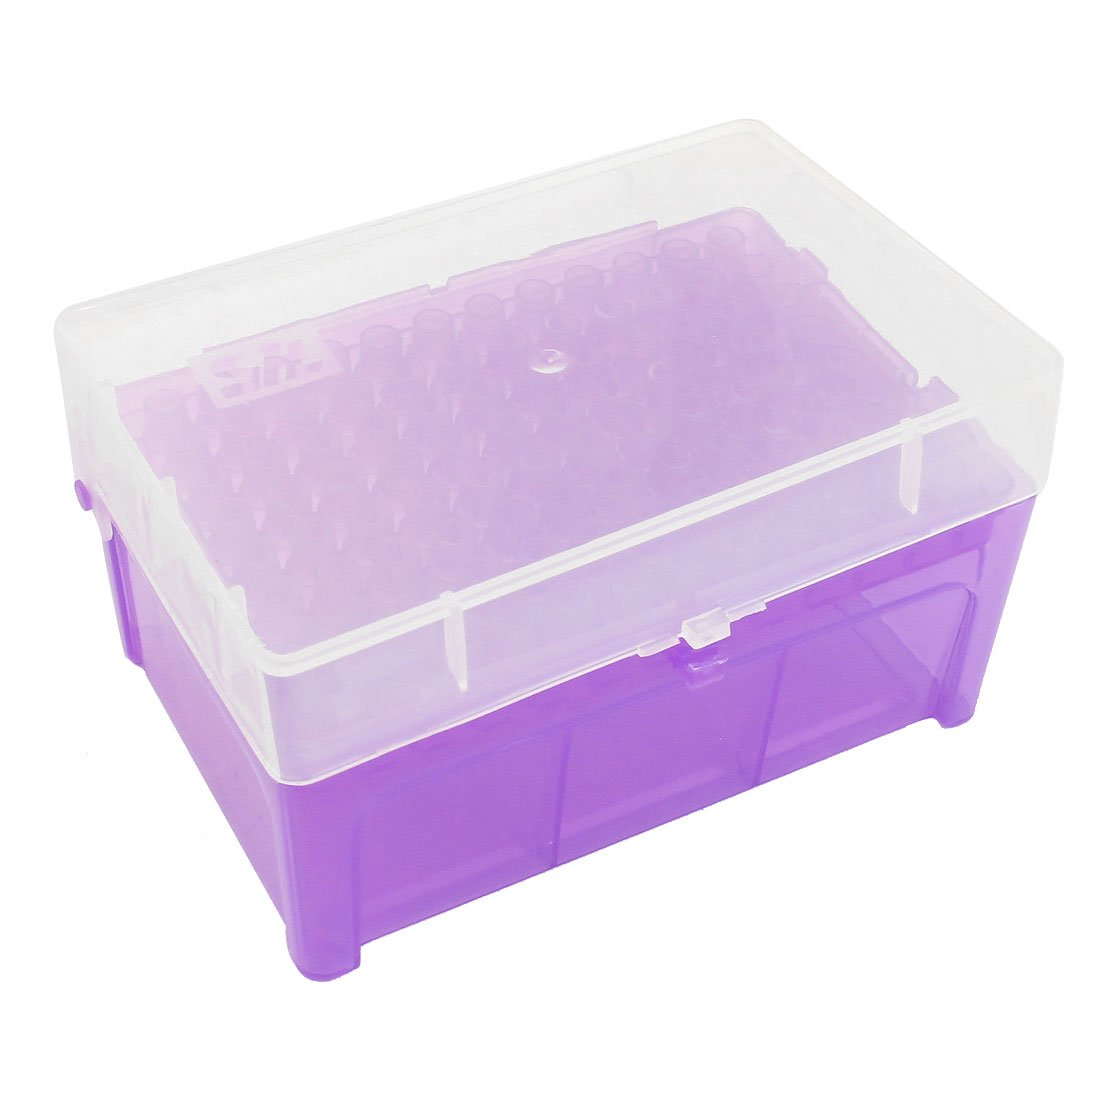 sourcingmap Laboratory 96 Positions 200uL Pipette Pipettor Tip Box Purple